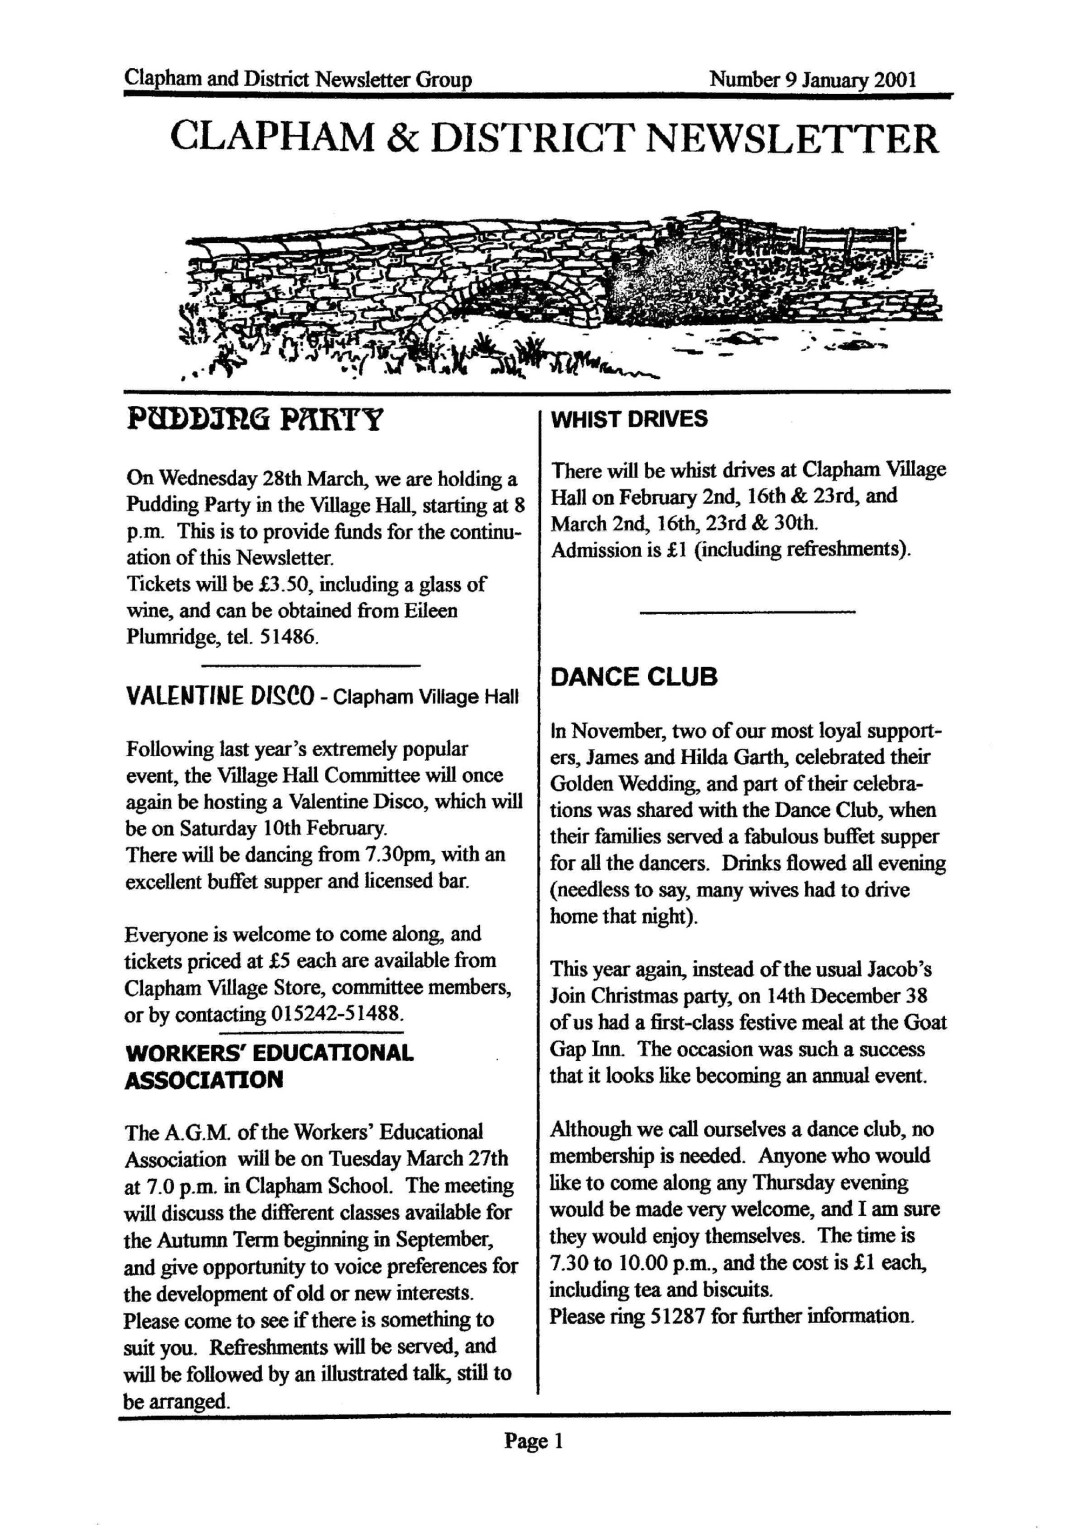 Clapham_Newsletter_No9_January_2001-1